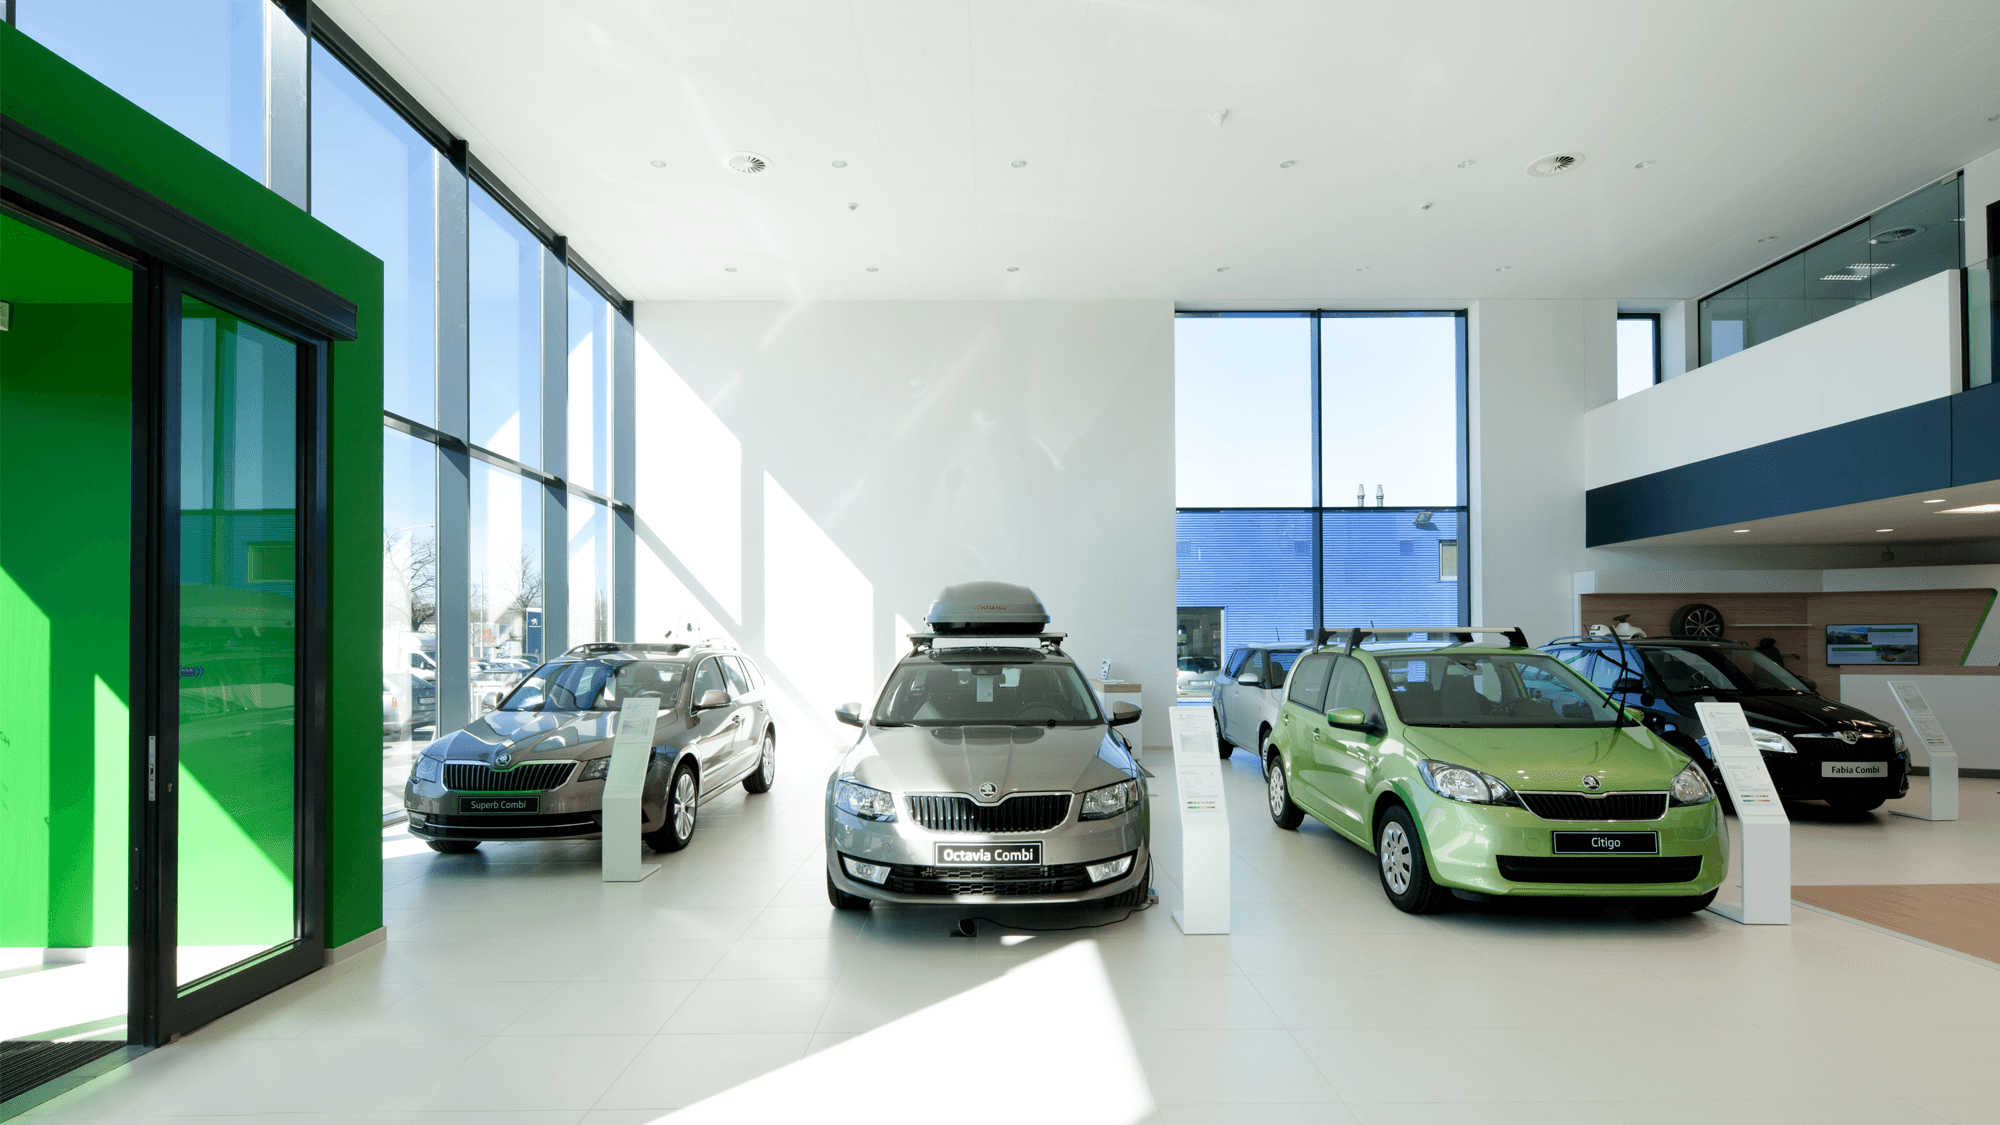 Skoda thuy ovg architecten for Garage skoda 92